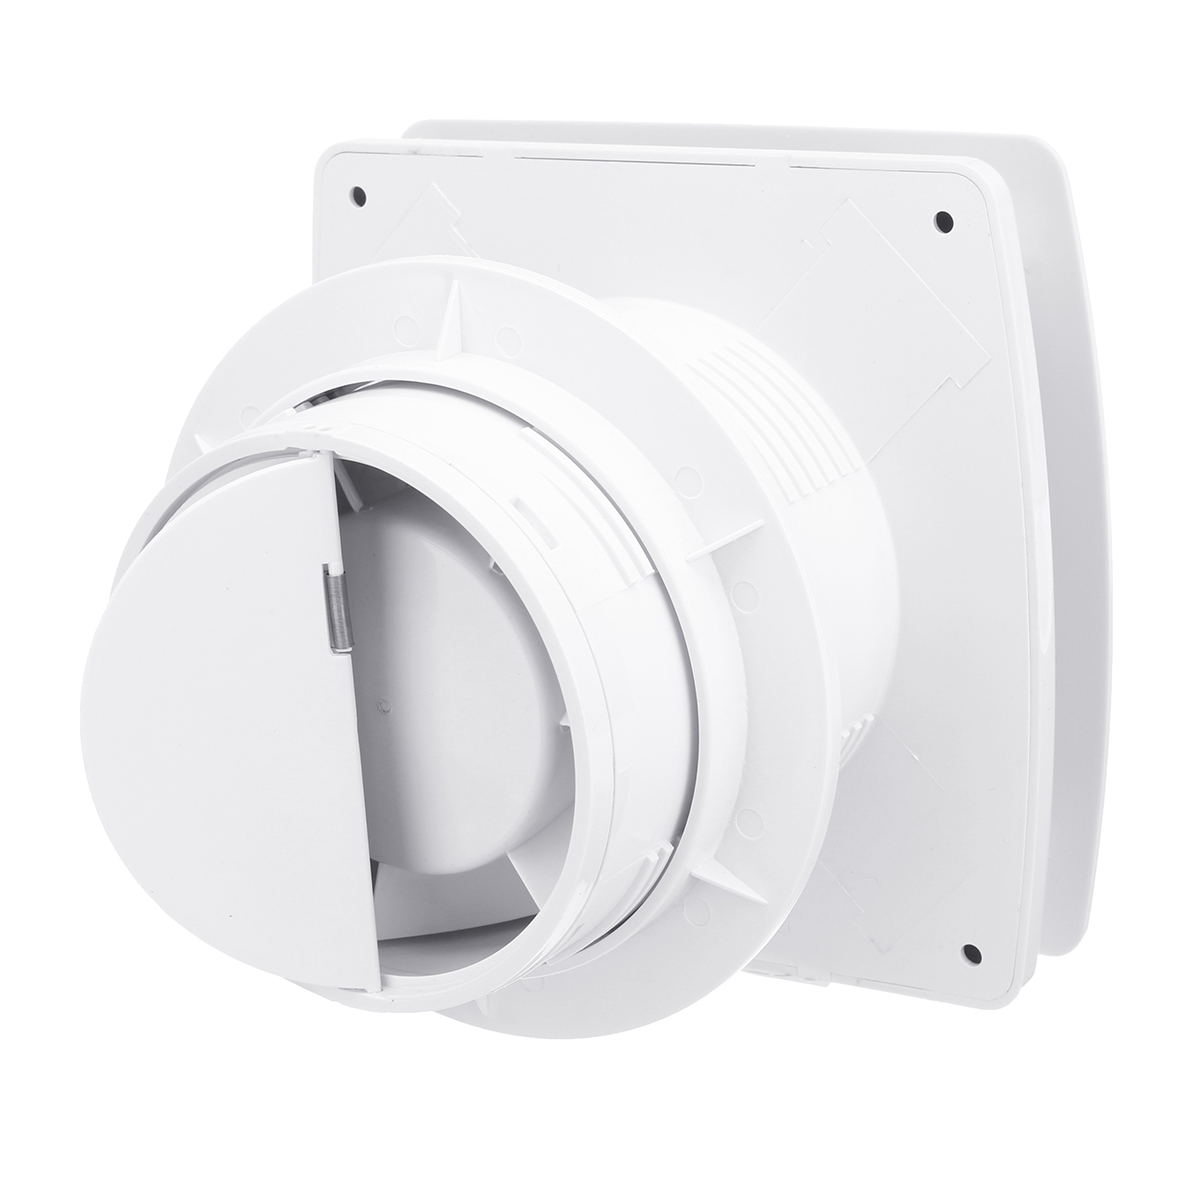 Latest Collection Of 4 220v 25w Exhaust Fan Window-type Silent Wall Extractor Air Vents Fan Window Bathroom Kitchen Toilet Ventilation Fan Be Friendly In Use Small Air Conditioning Appliances